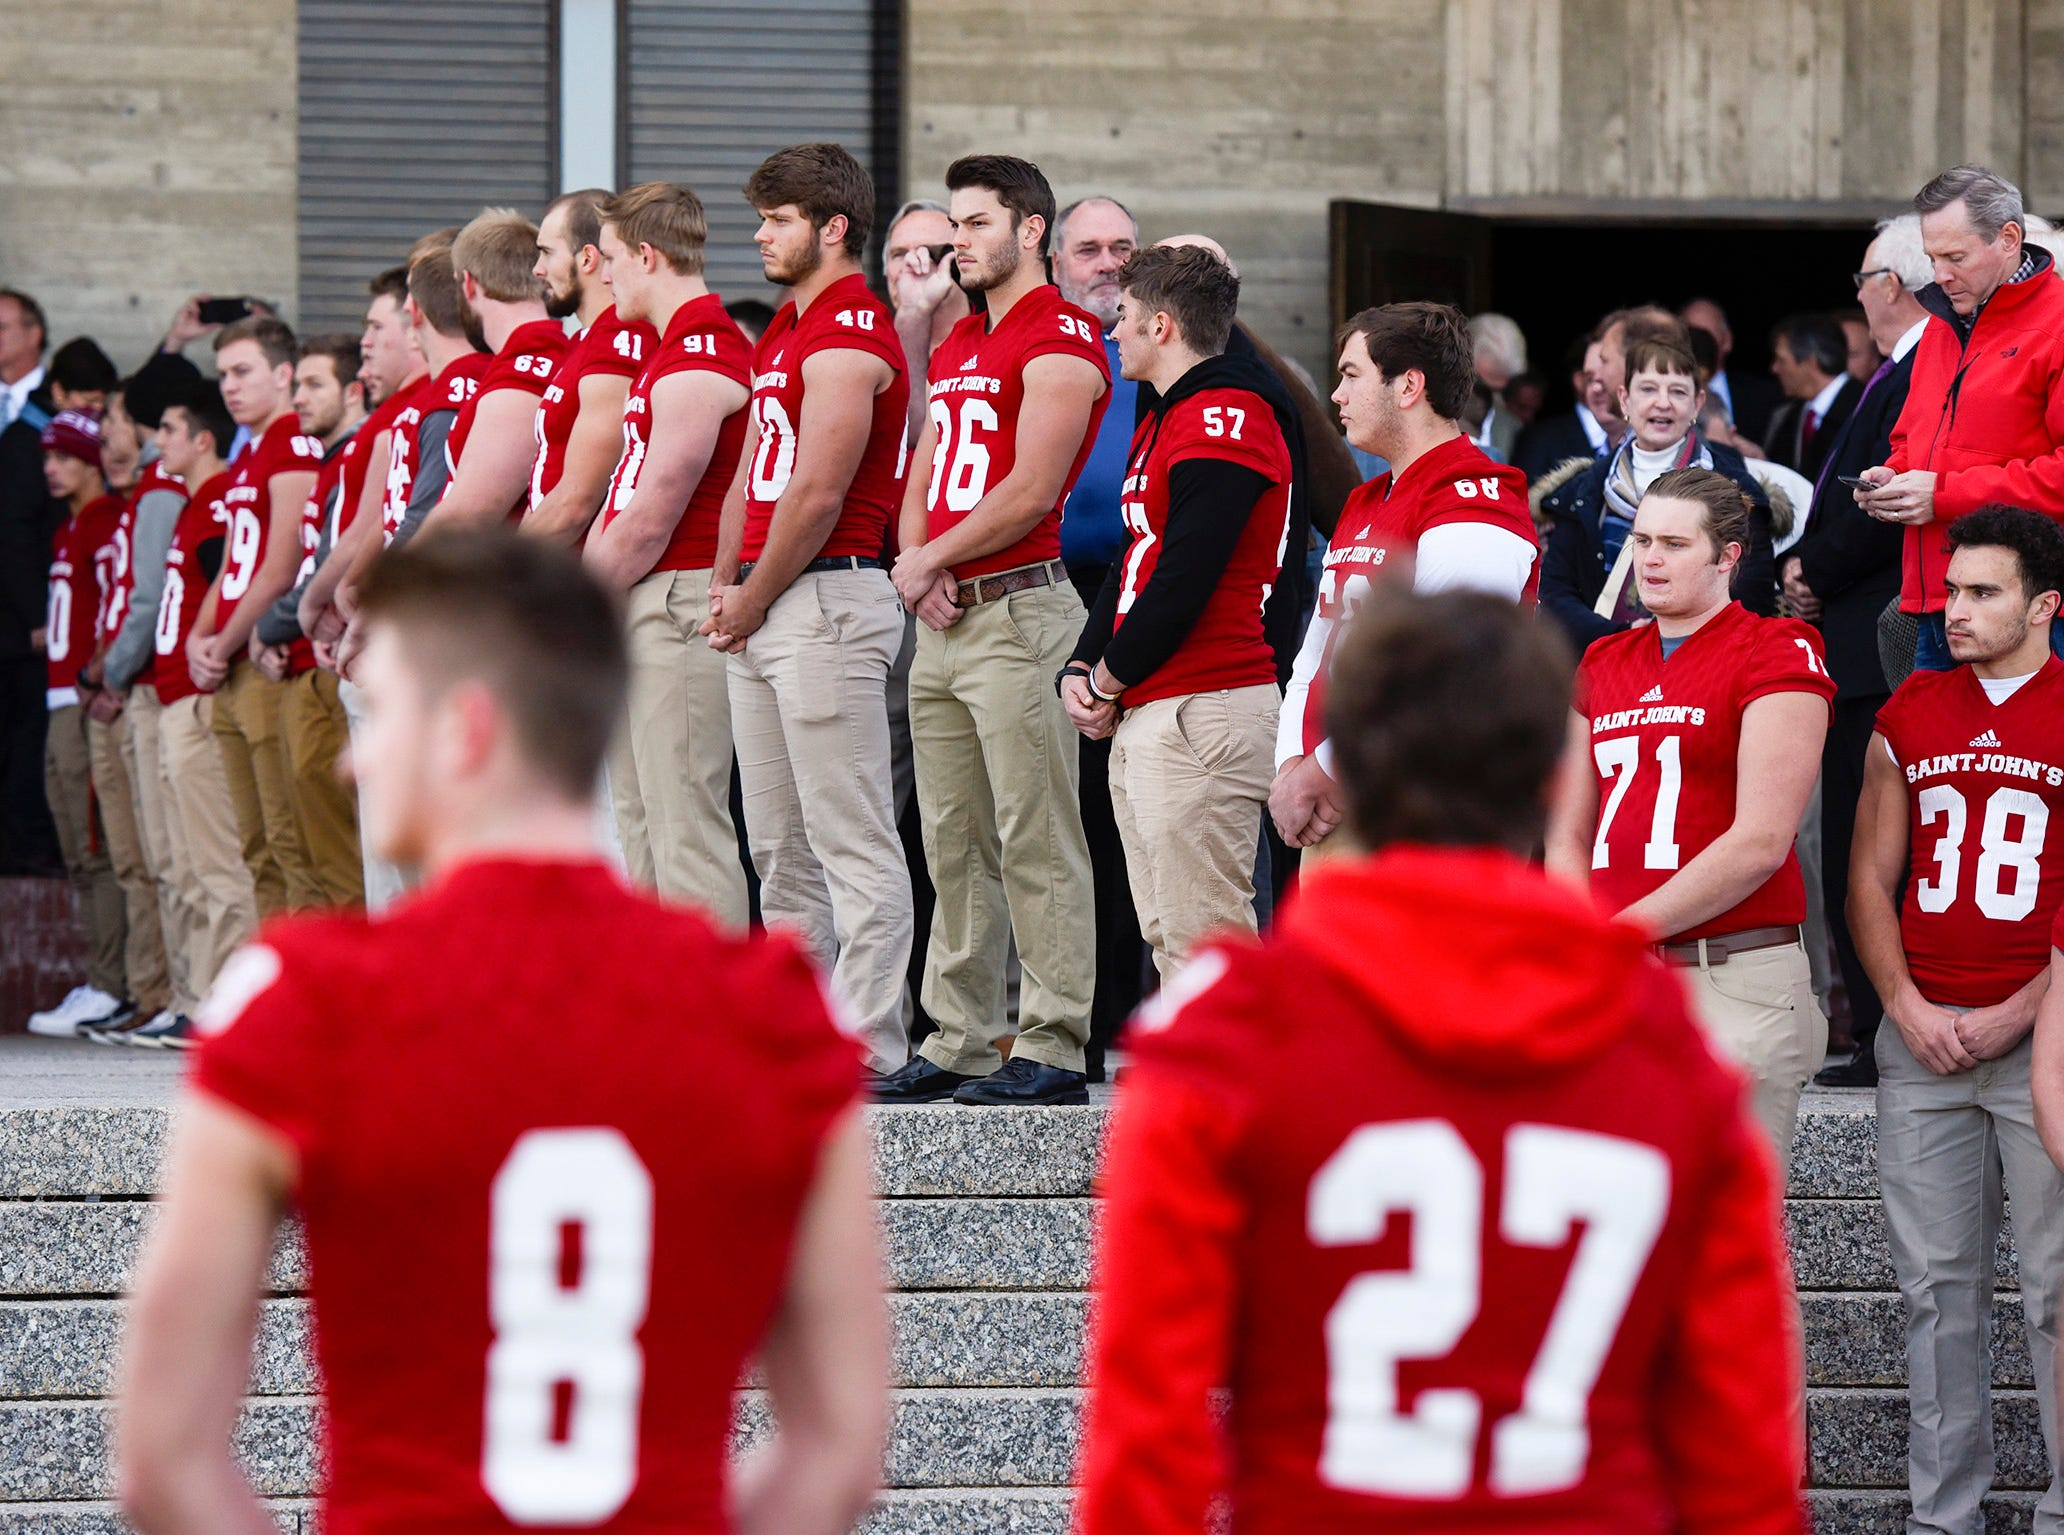 St. John's University Football players stand solemnly as the casket of long time St. John's University football coach John Gagliardi is carries to a hearse Monday, Oct. 15, at the St. John's Abbey in Collegeville.